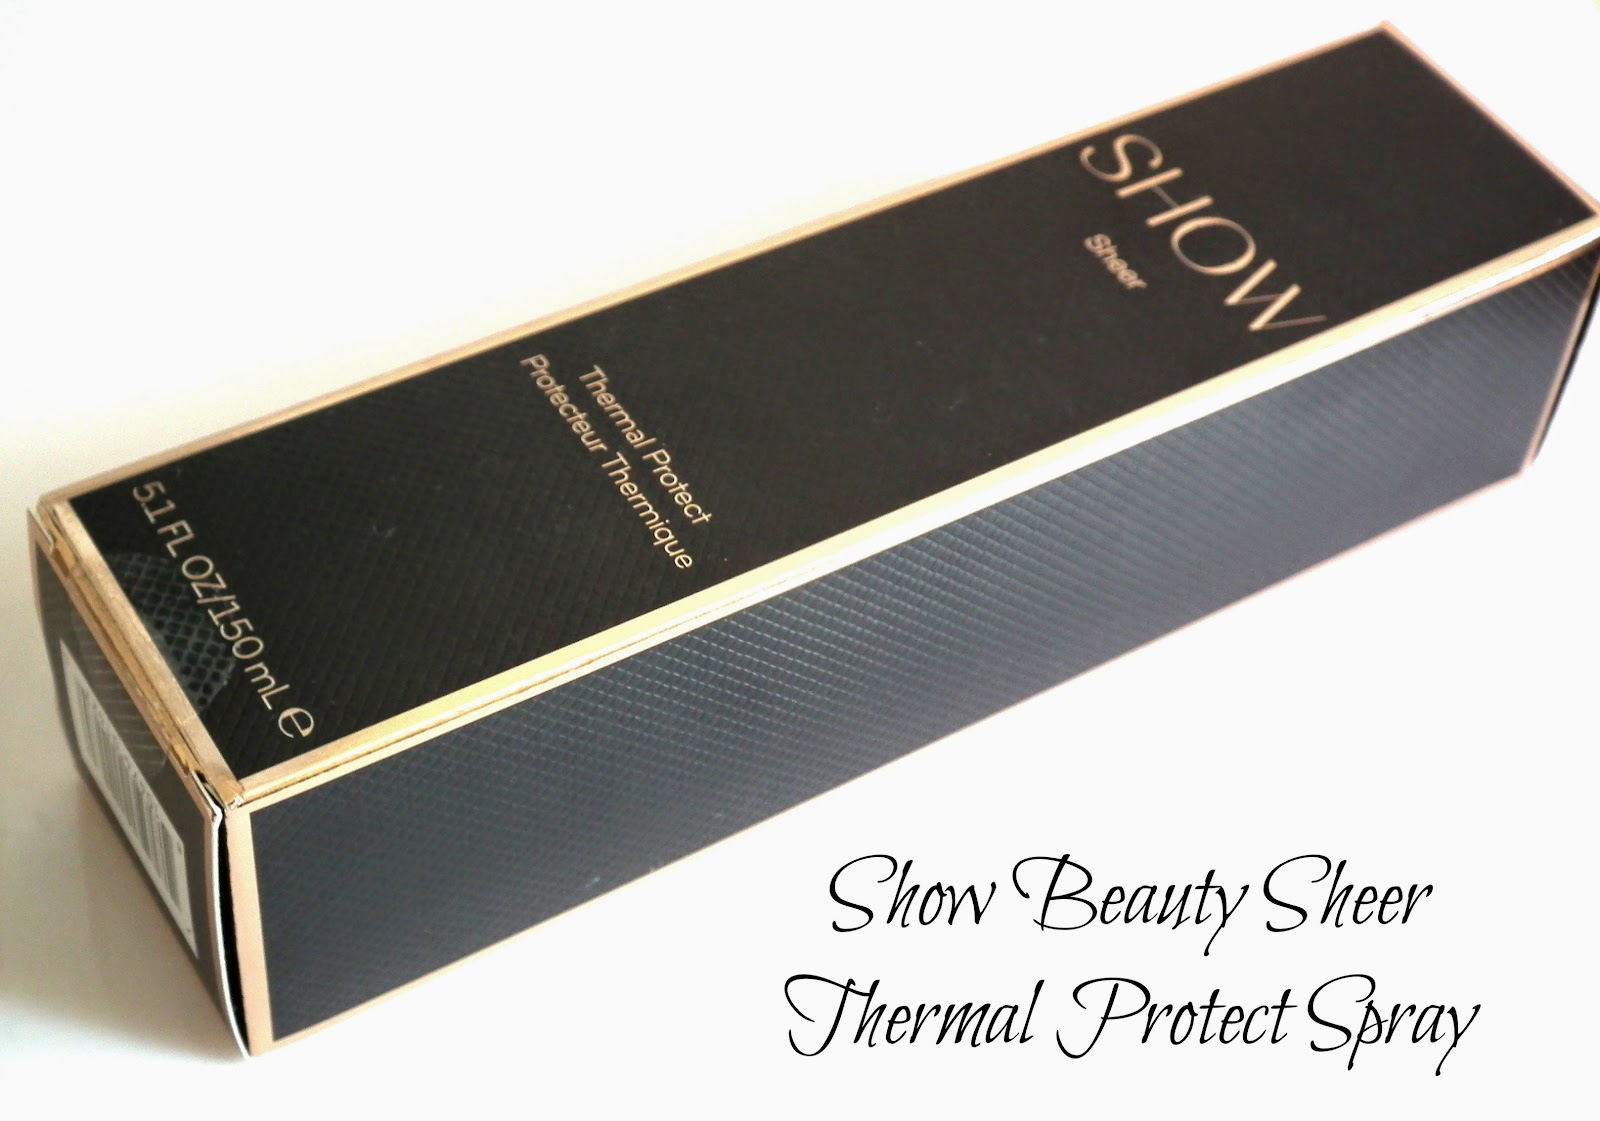 Show Beauty Thermal Protect Spray Reviews